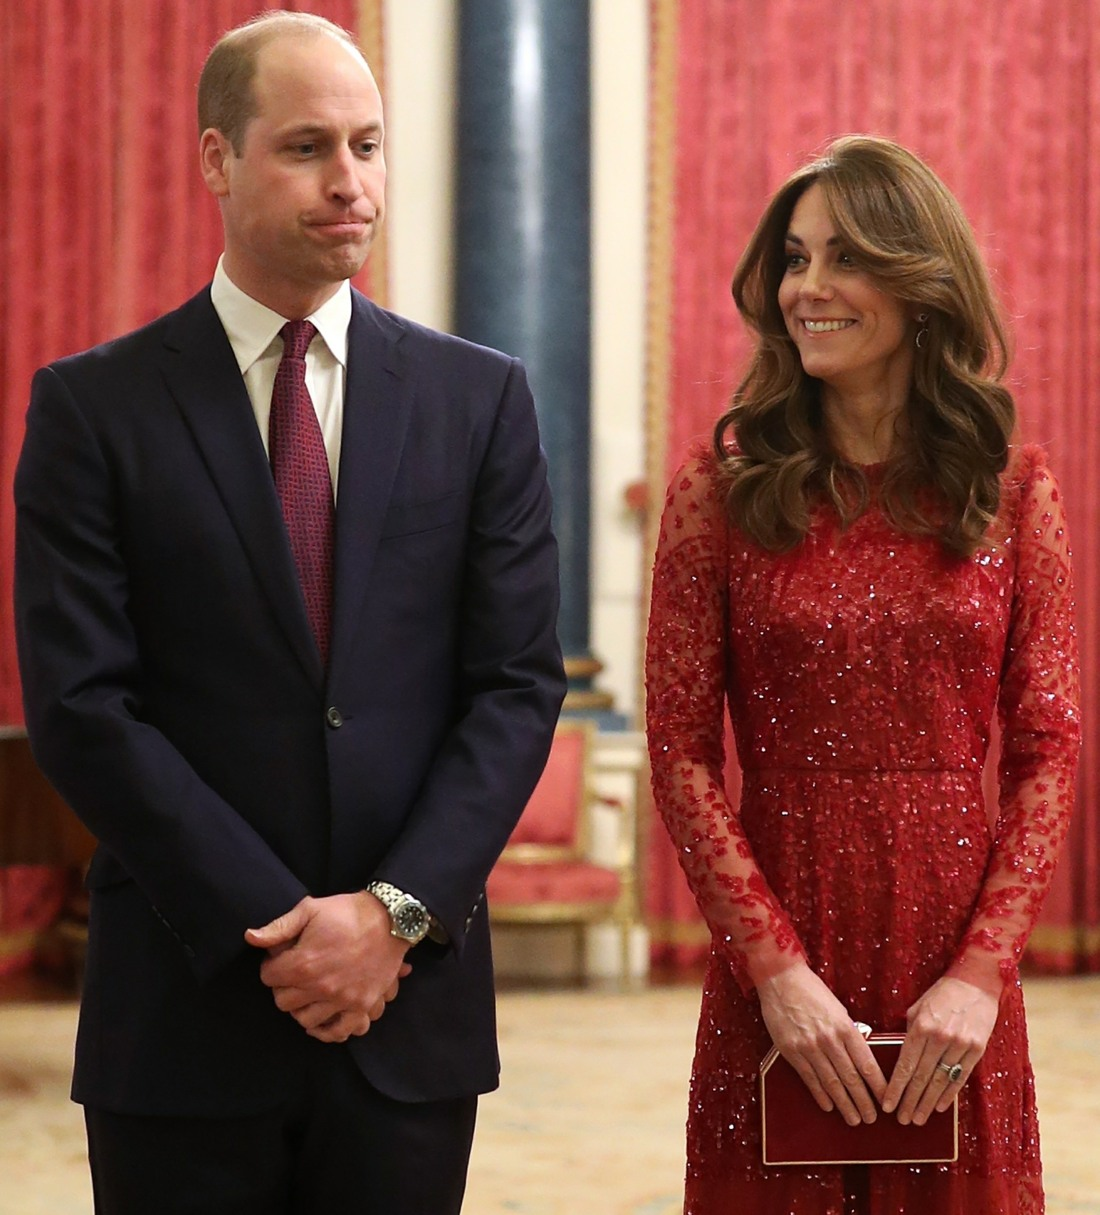 The Duke And Duchess Of Cambridge host a UK-Africa Investment Summit at Buckingham Palace